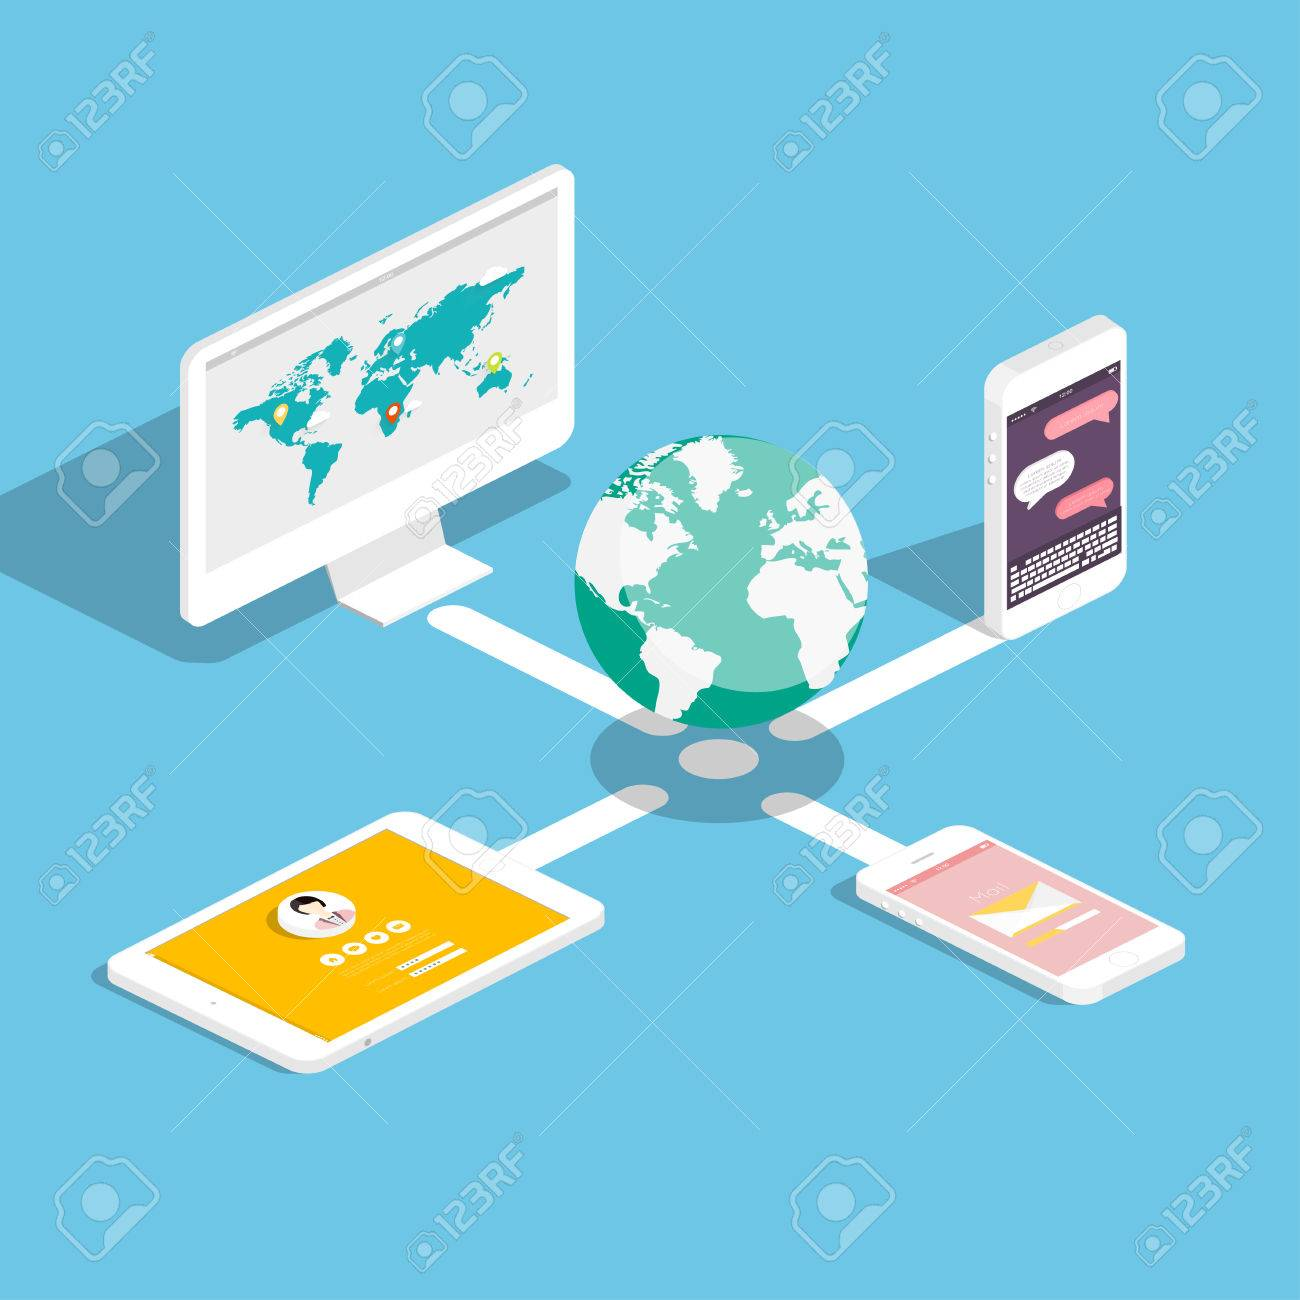 Flat 3d isometric touchpad pc (tablet) with clouds and user interface development concept. Application and software, screen and phone. - 38418462